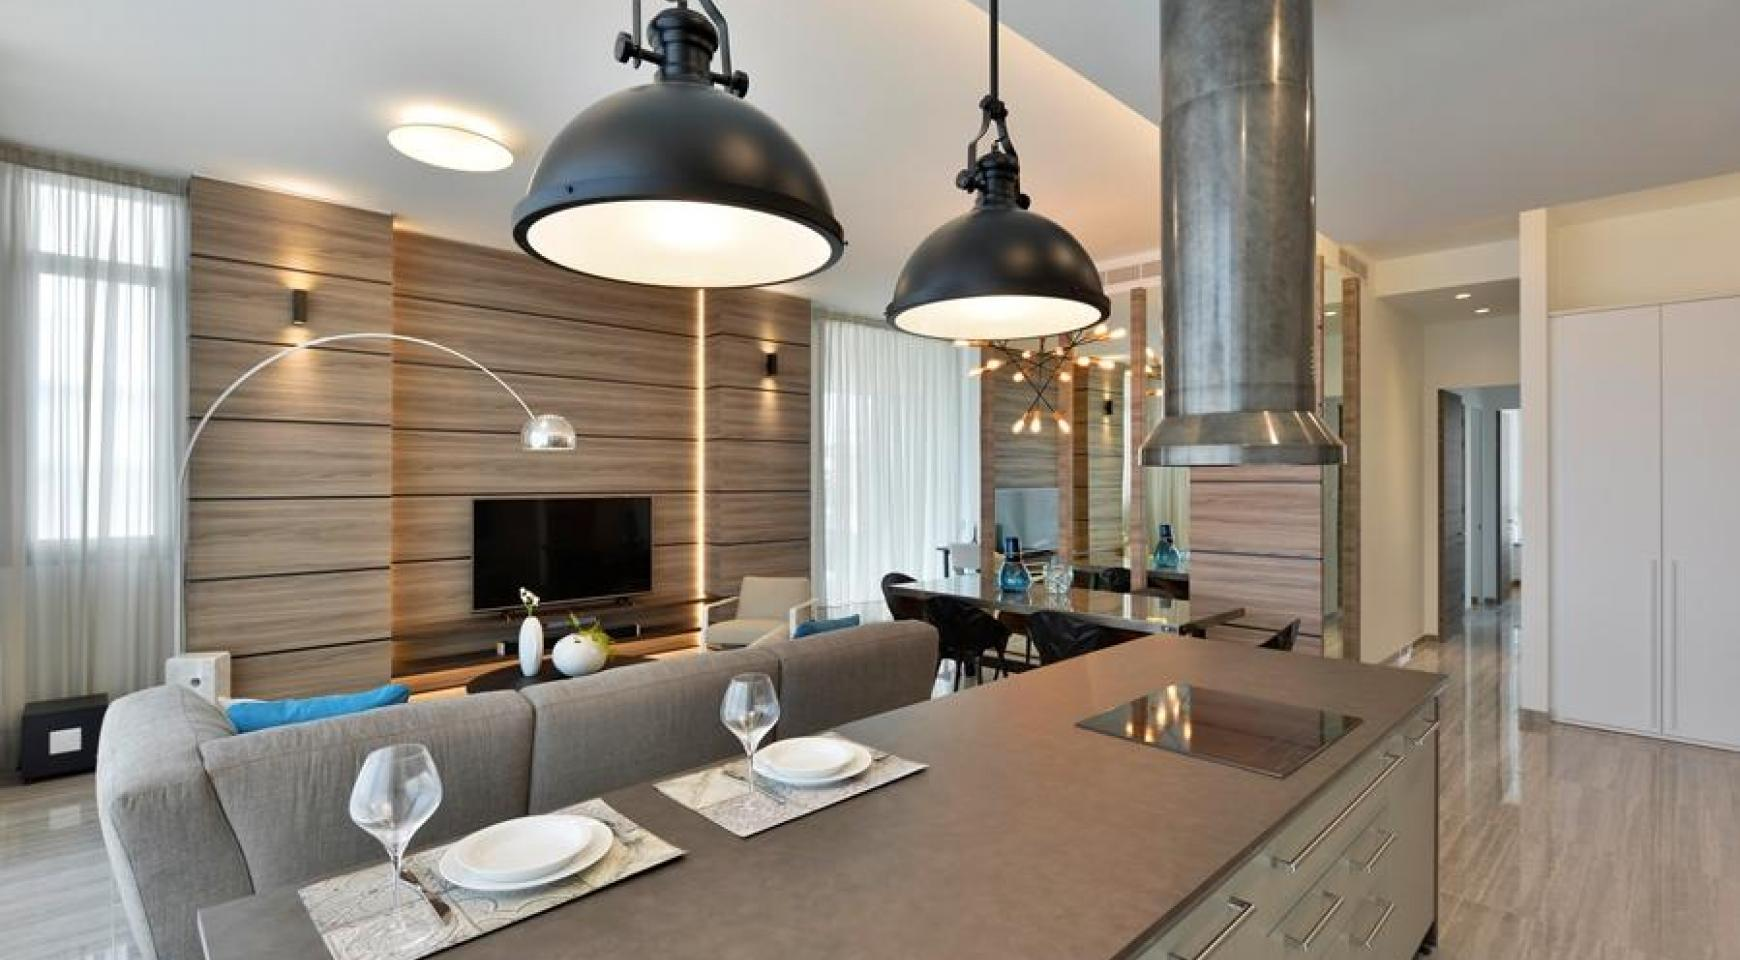 Elite 3 Bedroom Apartment within a New Complex near the Sea - 6